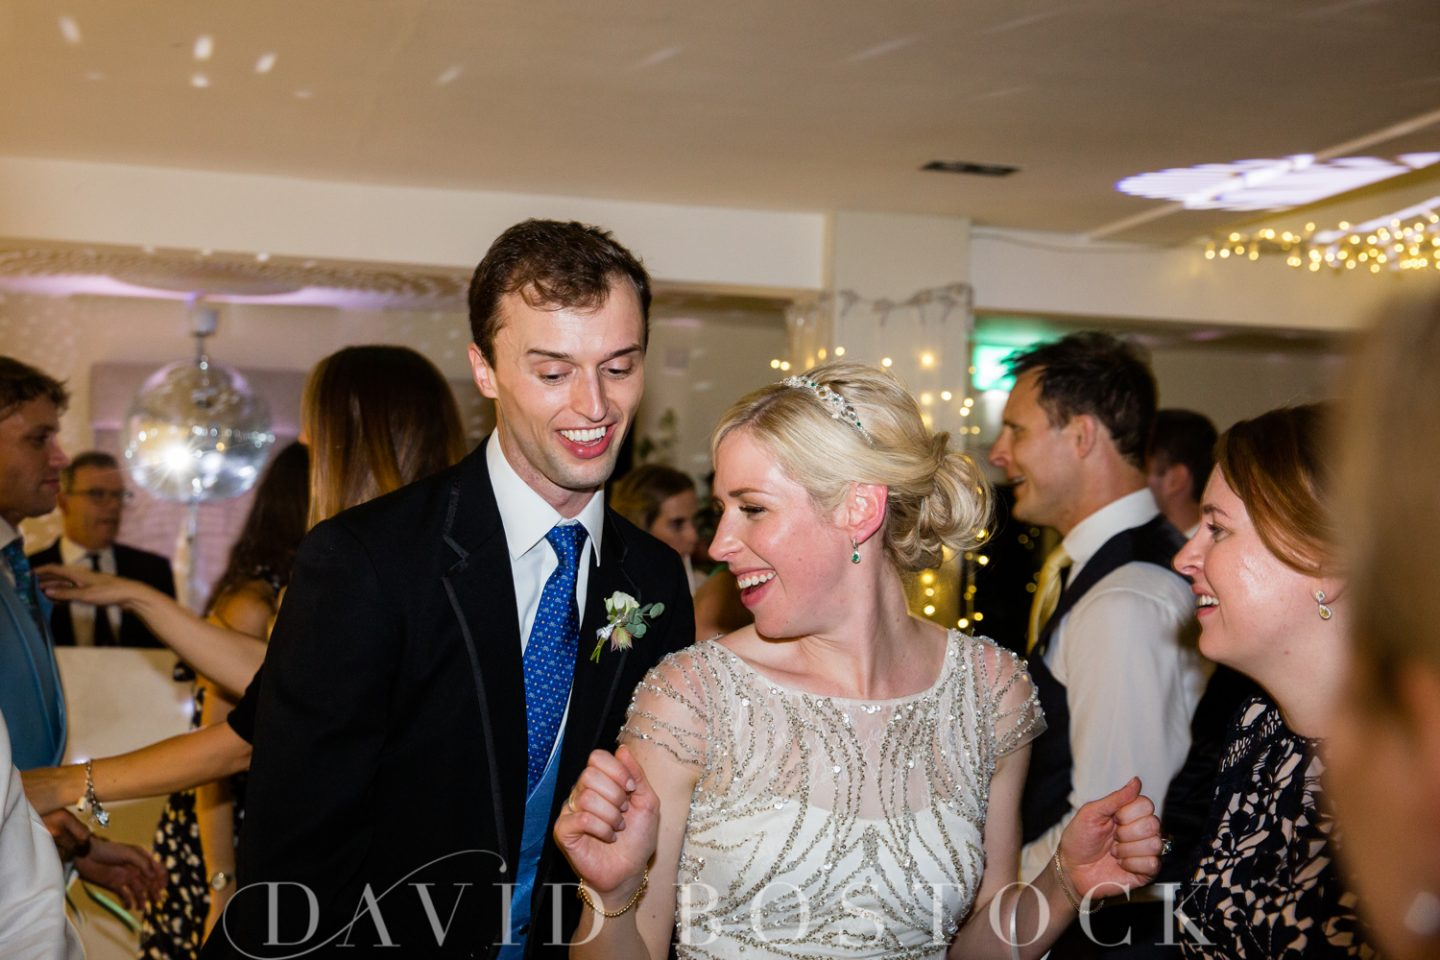 Eton College Chapel Wedding + Stoke Place Wedding Reception Dance Floor